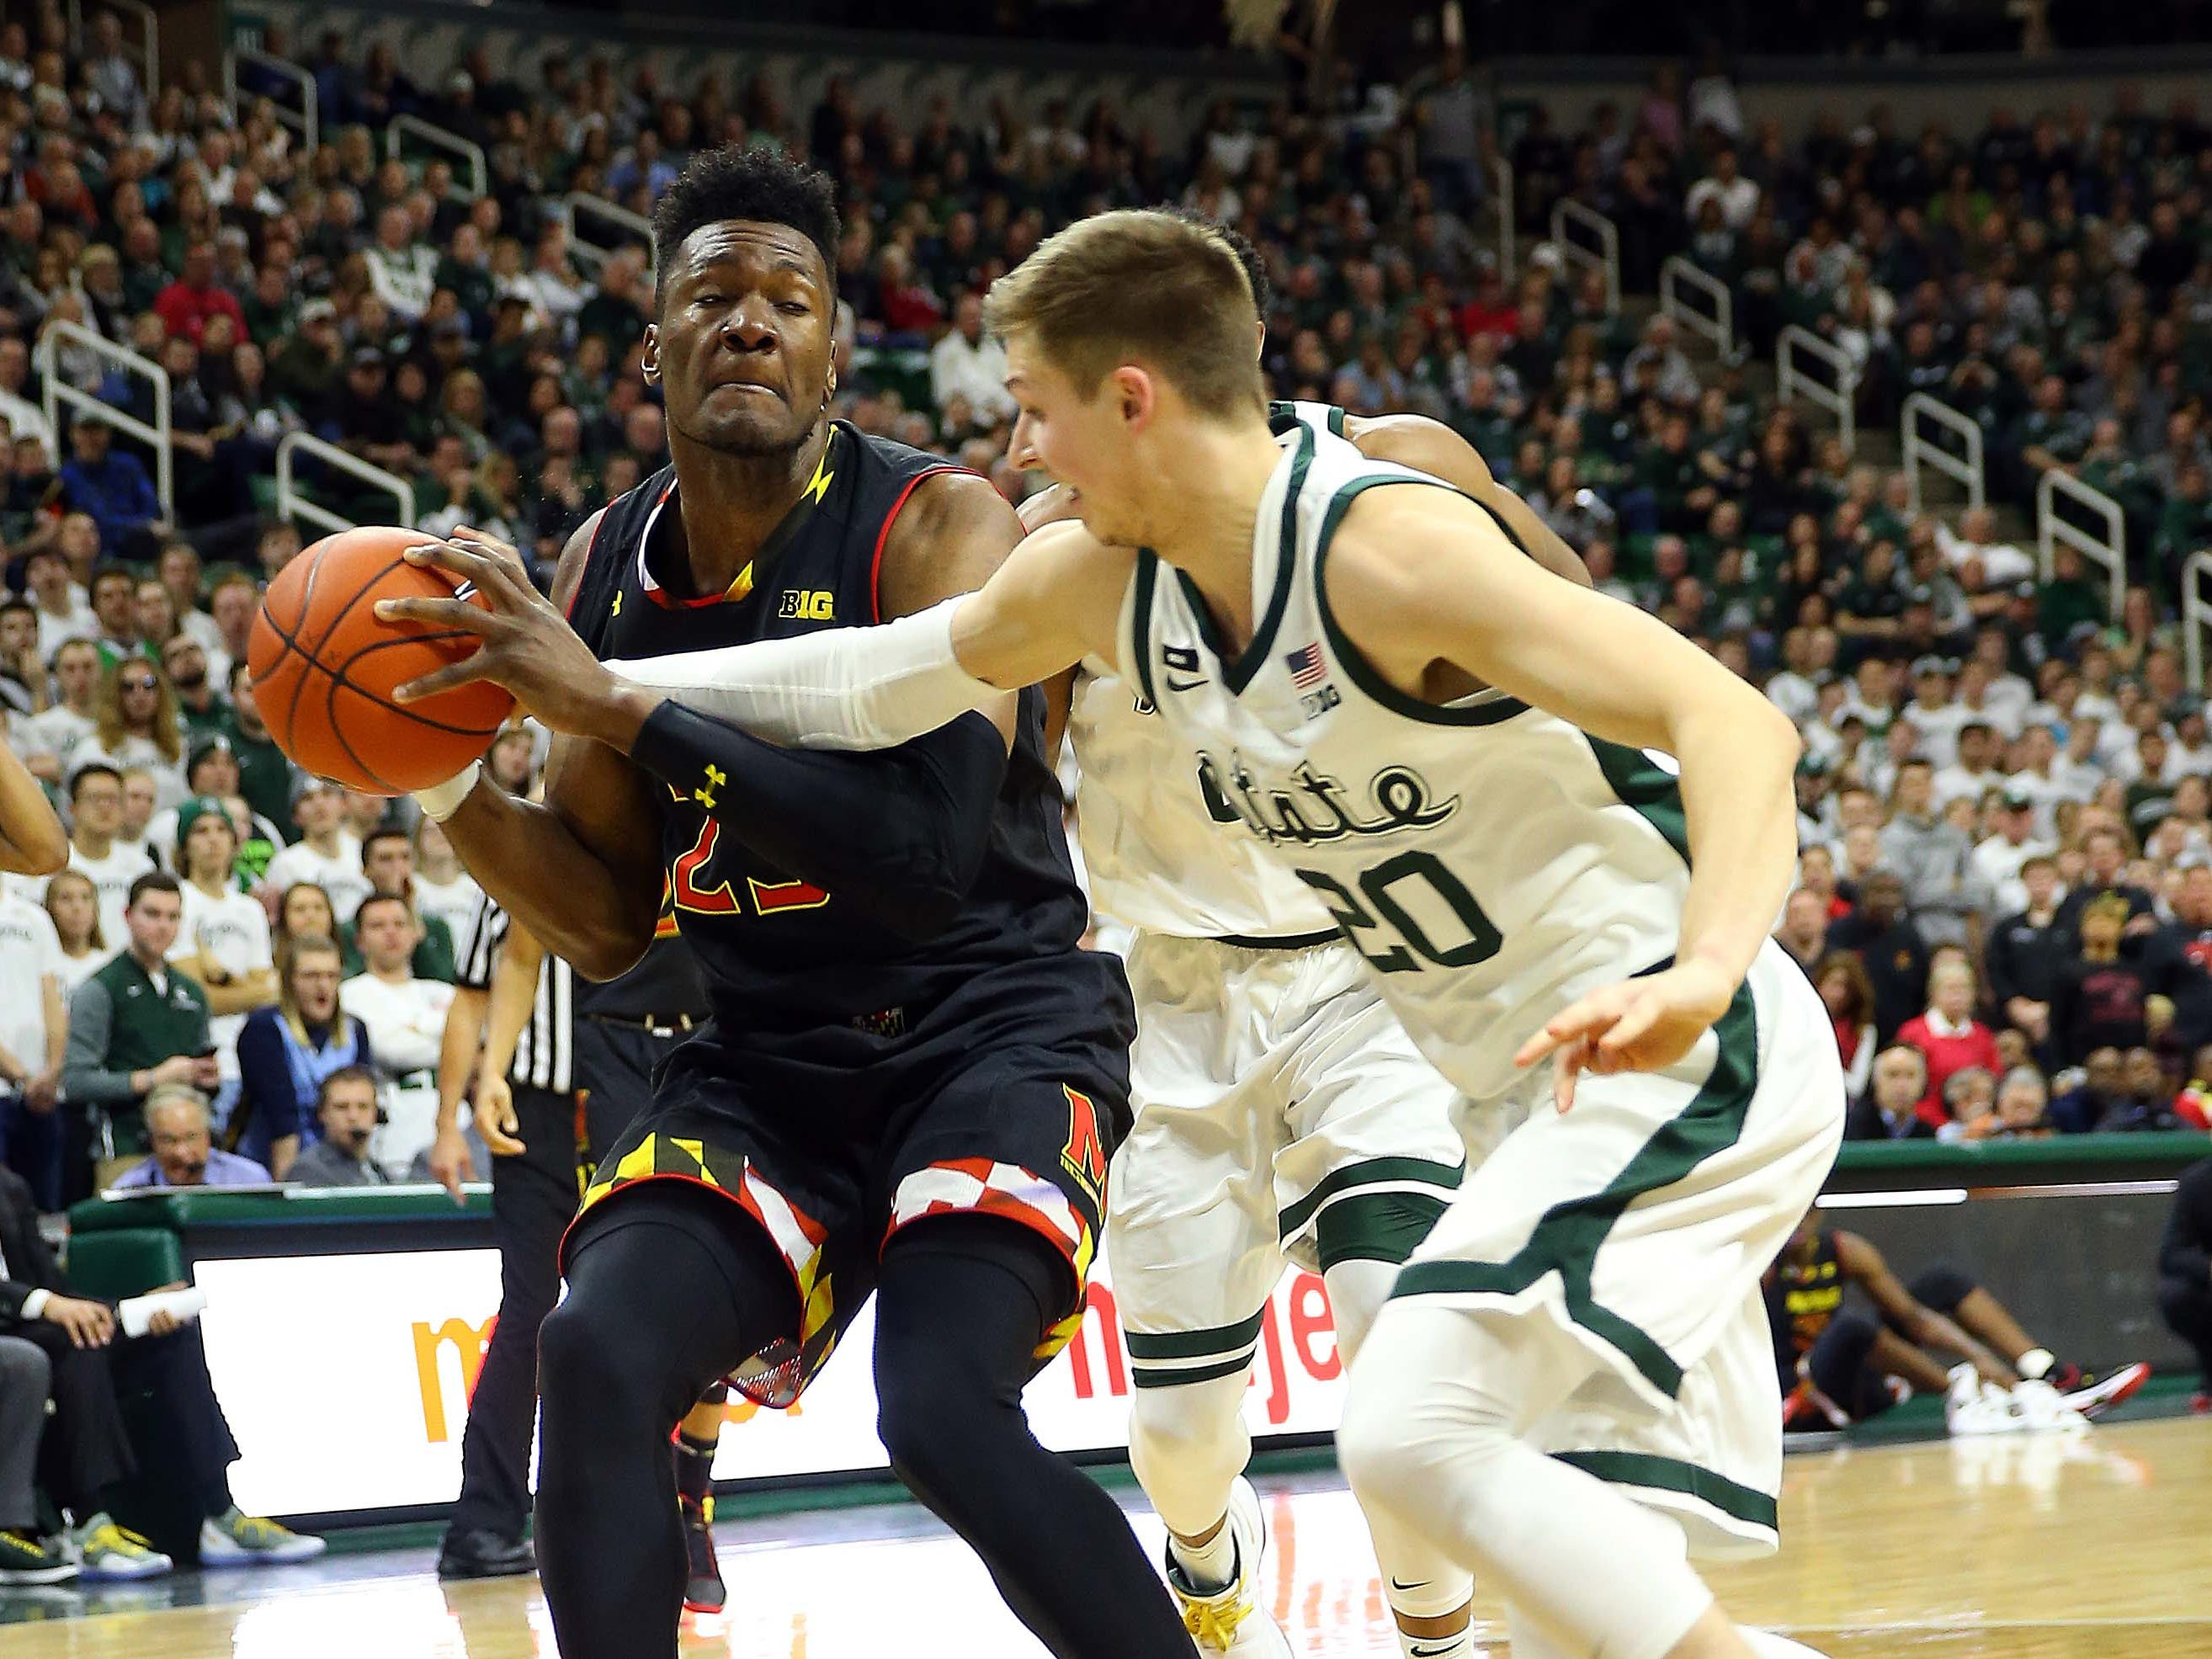 Maryland Terrapins forward Bruno Fernando (23) is fouled by Michigan State Spartans guard Matt McQuaid (20) during the first half of a game at the Breslin Center.